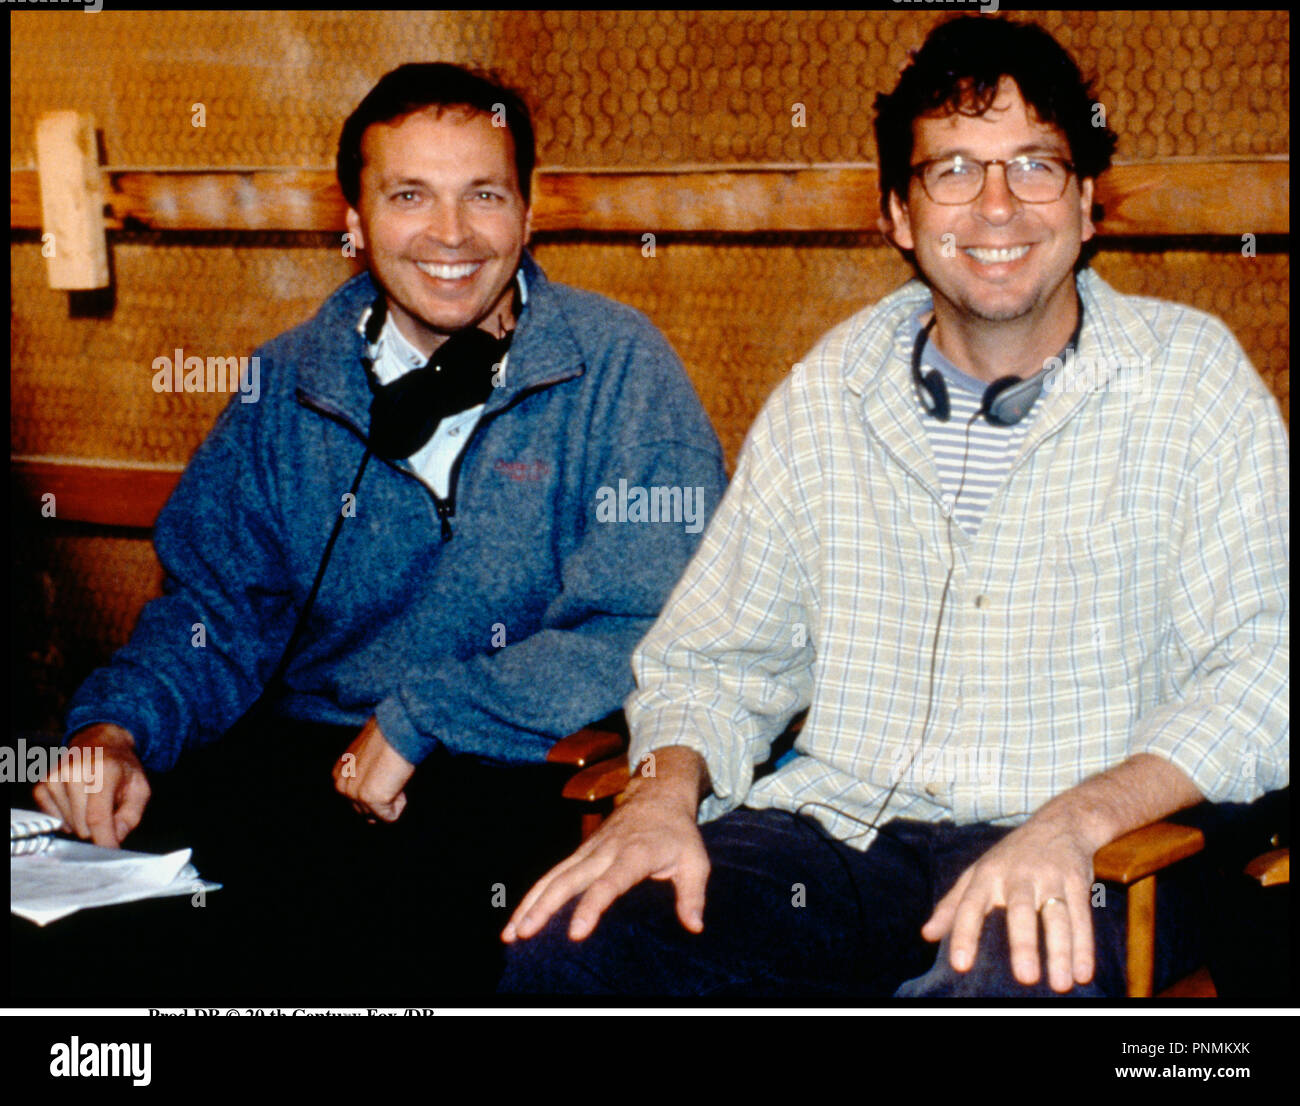 Prod DB © 20 th Century Fox /DR MARY A TOUT PRIX (THERE'S SOMETHING ABOUT MARY) de Bobby et Peter Farrelly 1998 USA avec Bobby Farrelly et Peter Farrelly surle tournage realisateurs - Stock Image